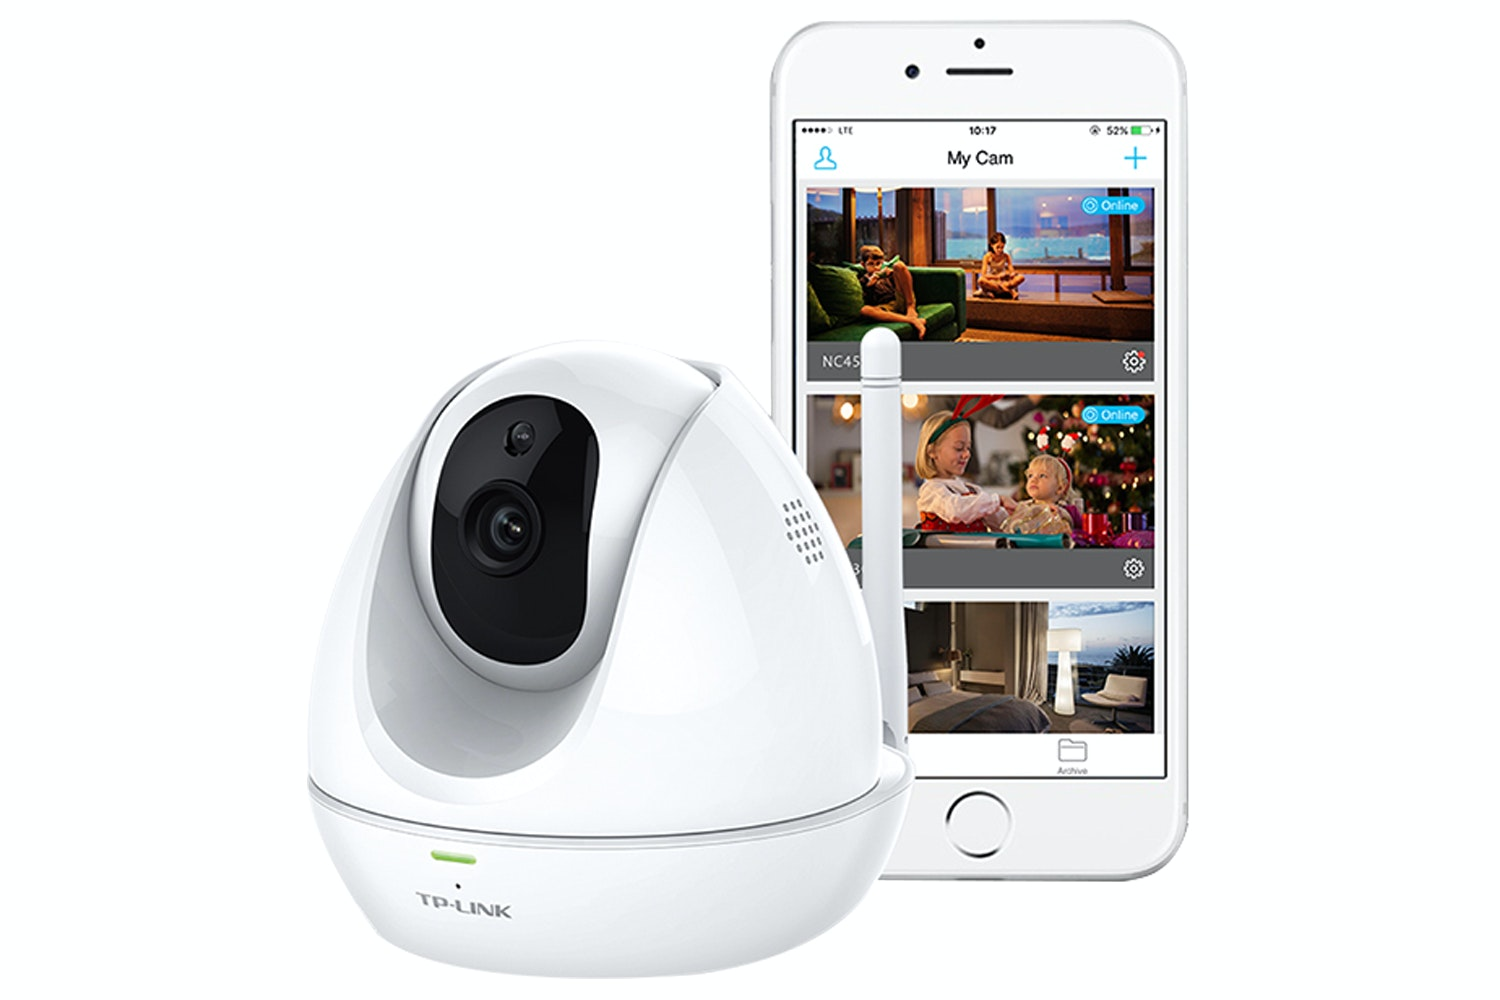 TP-LINK Wi-Fi HD Security Camera | NC450